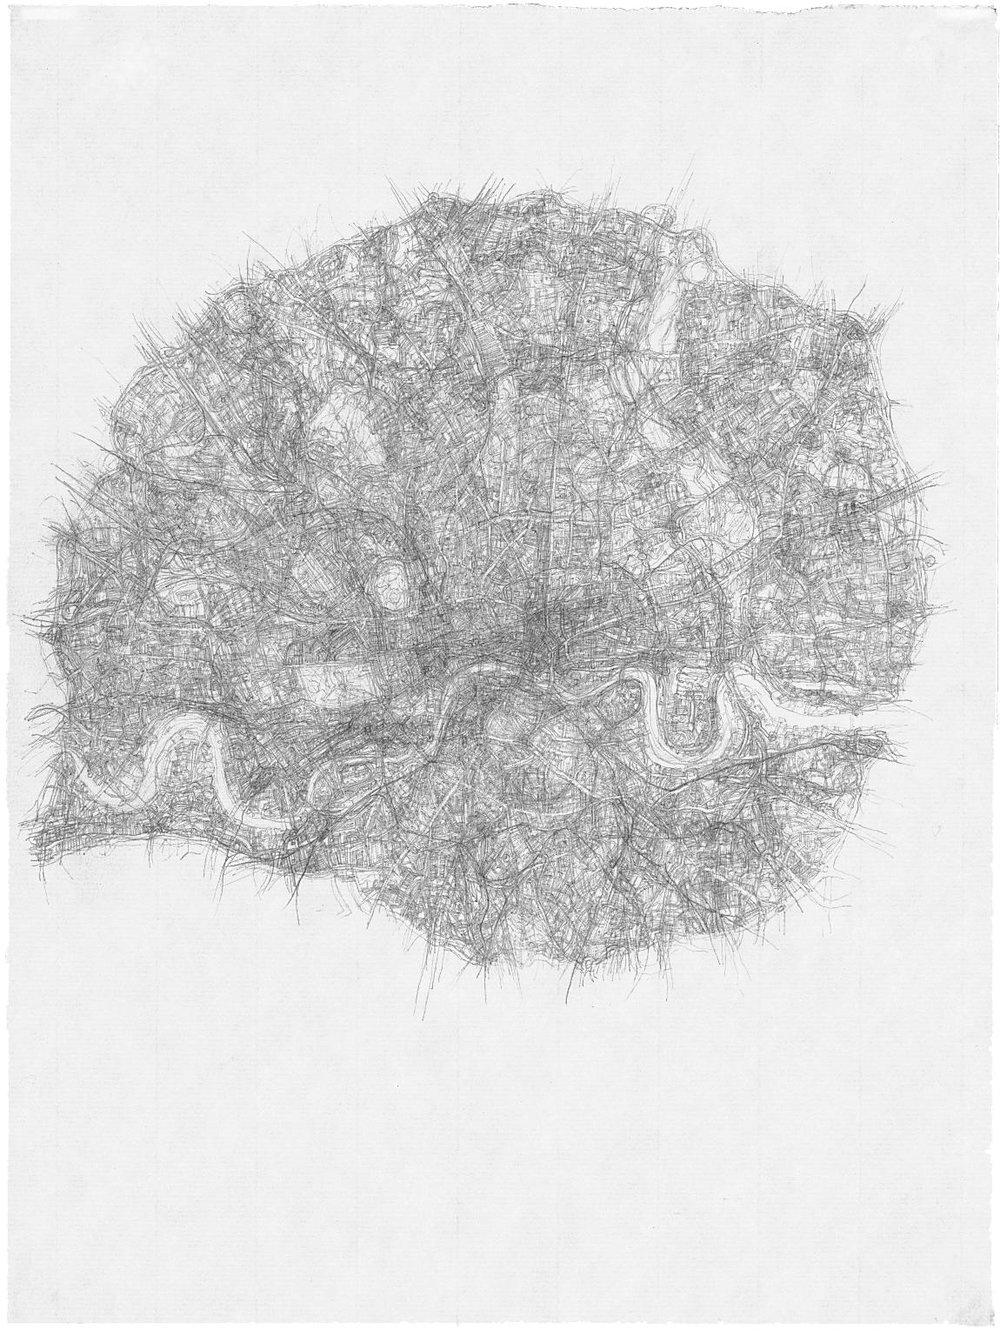 City Drawings Series - London-n13 1997 pencil on paper 31 x 21 cm / 12.2 x 8.3 in. Click the picture for source.